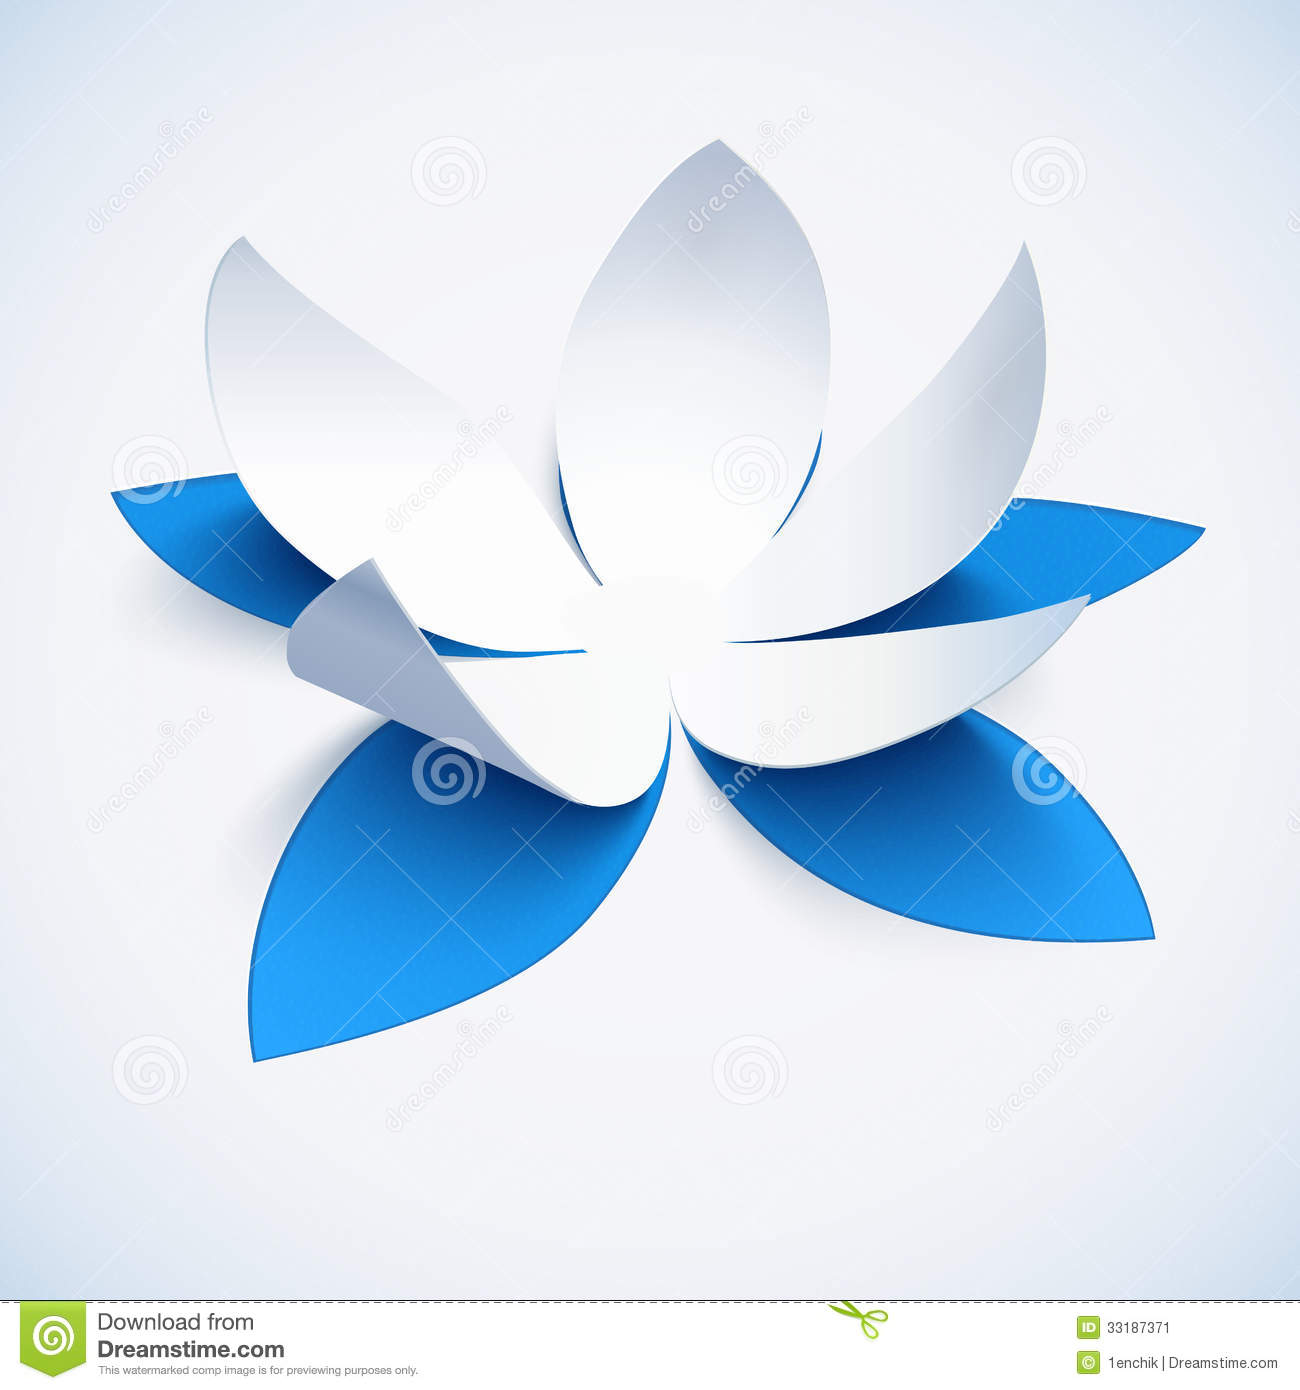 Lotus Flower Design Wall Paper : Blue cutout paper vector plower stock image